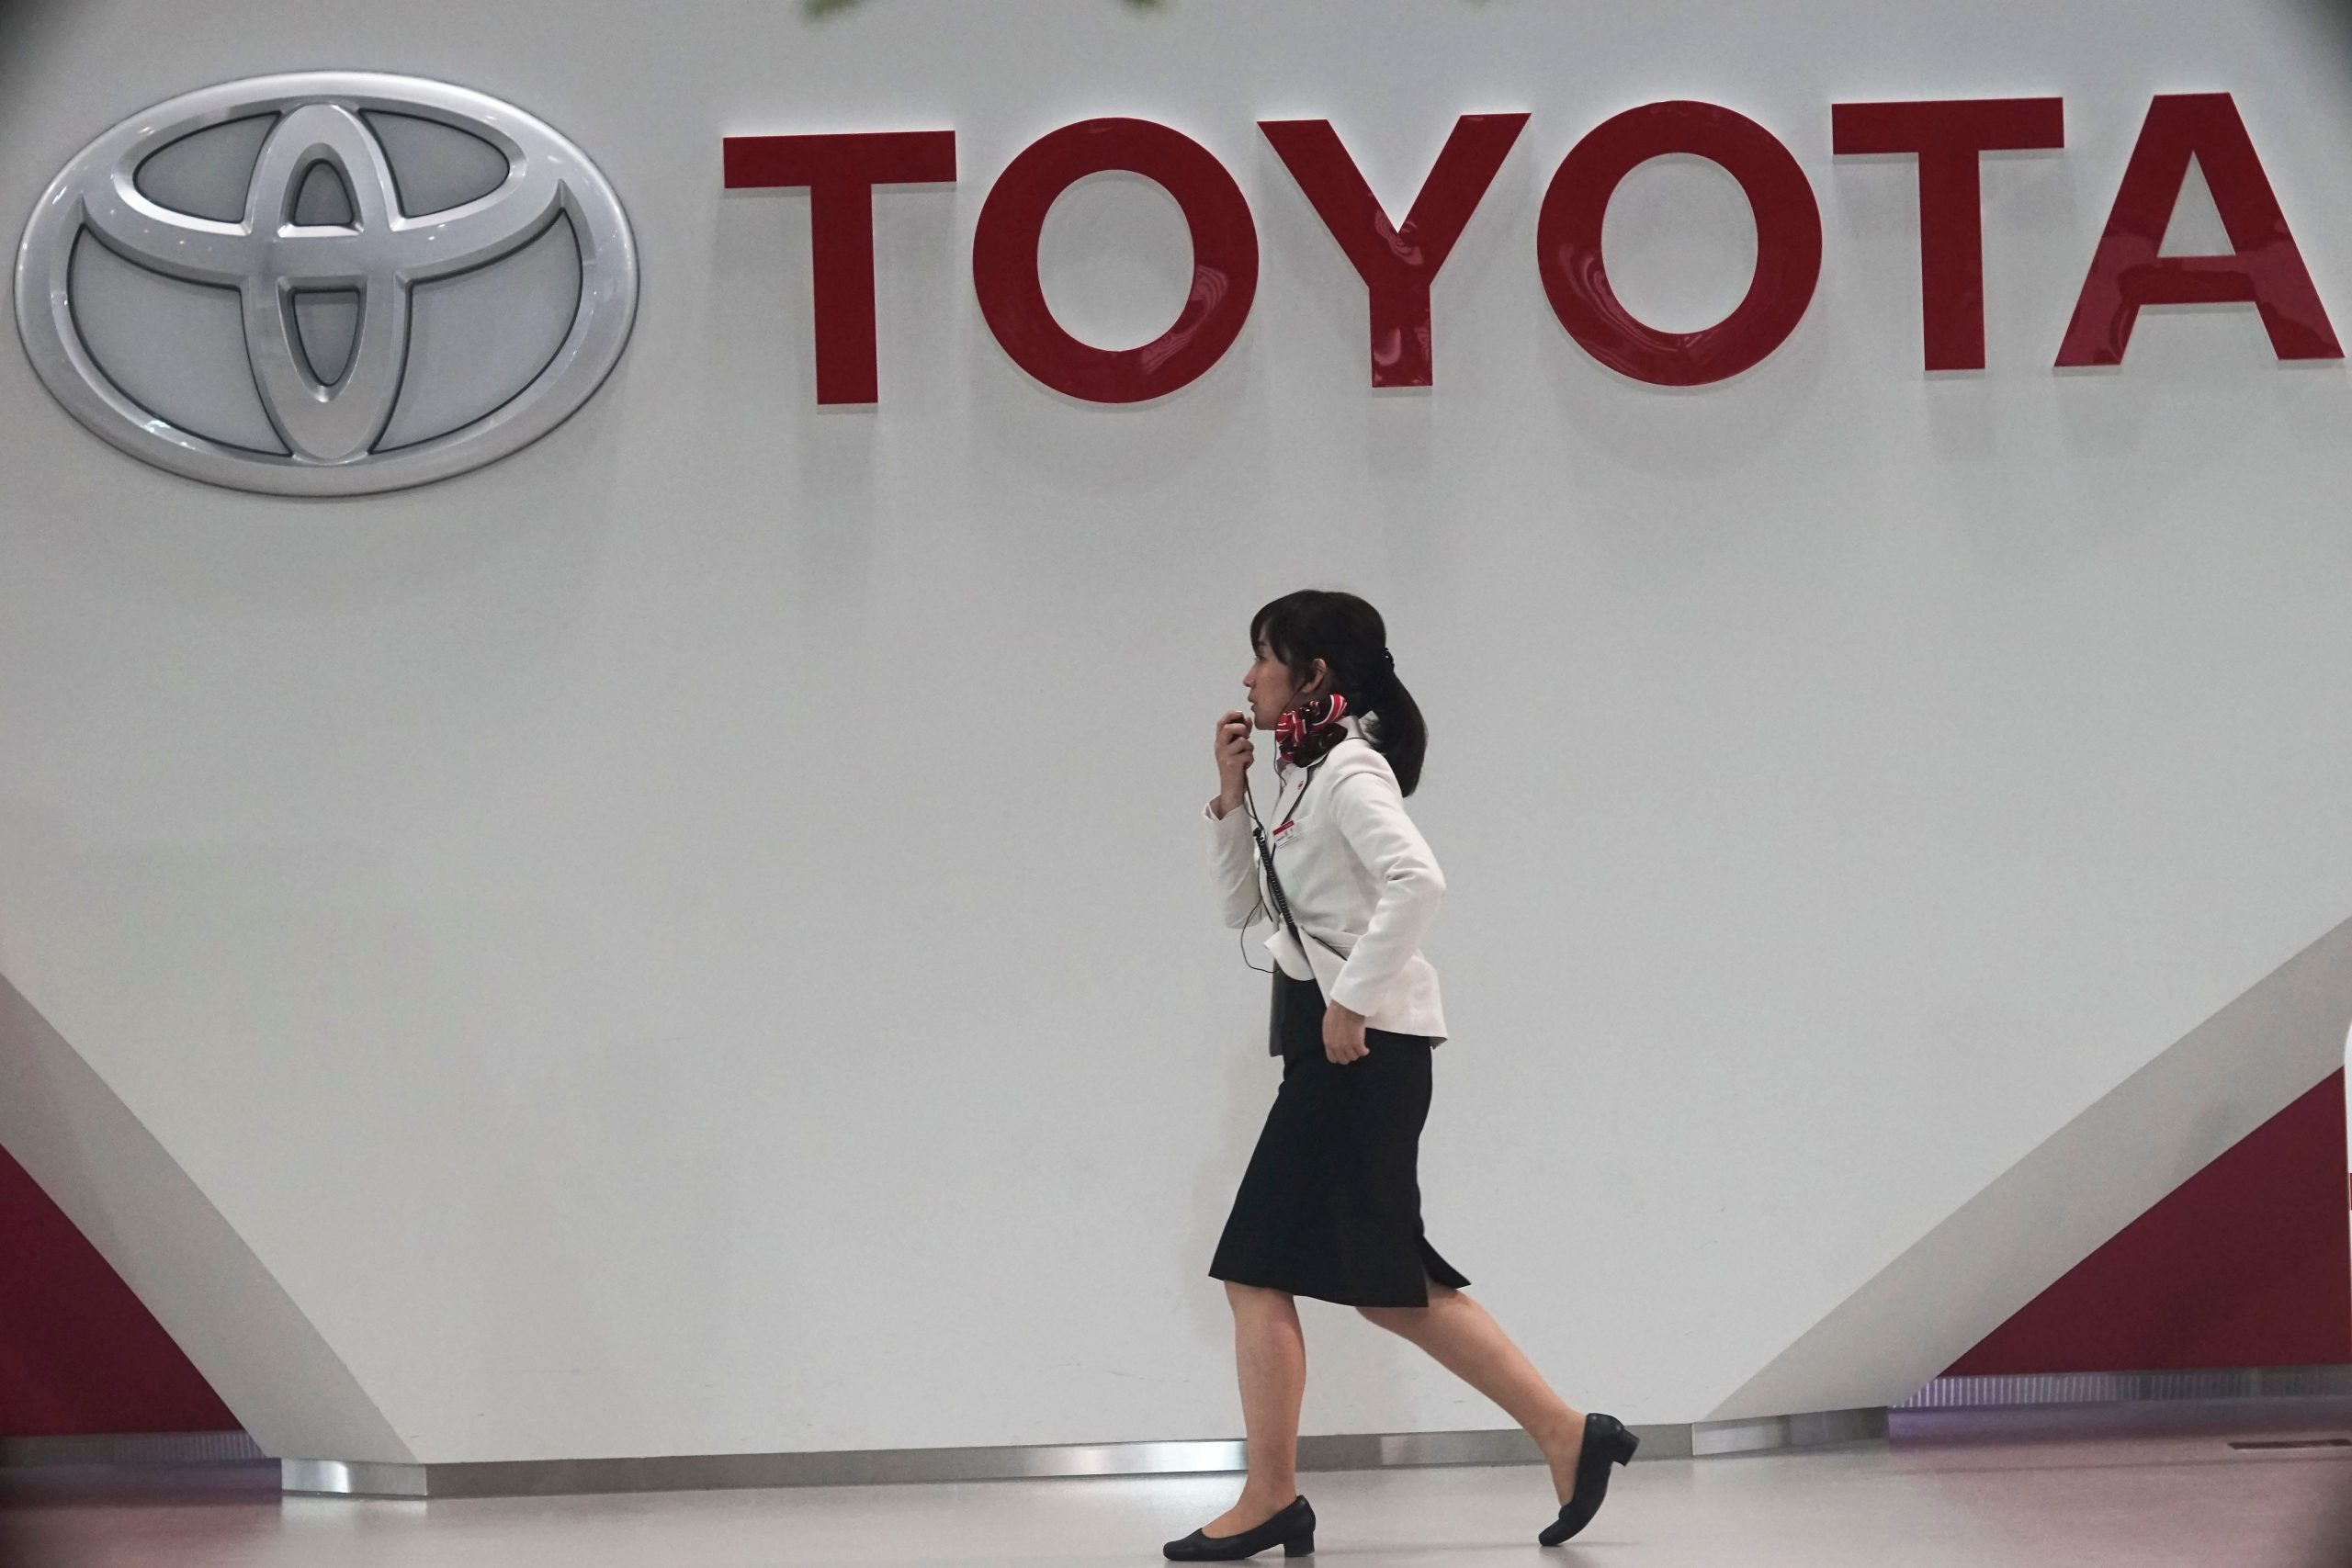 Toyota tops list of corporate donors to anti-election-certification Republicans in Congress after Capitol insurrection